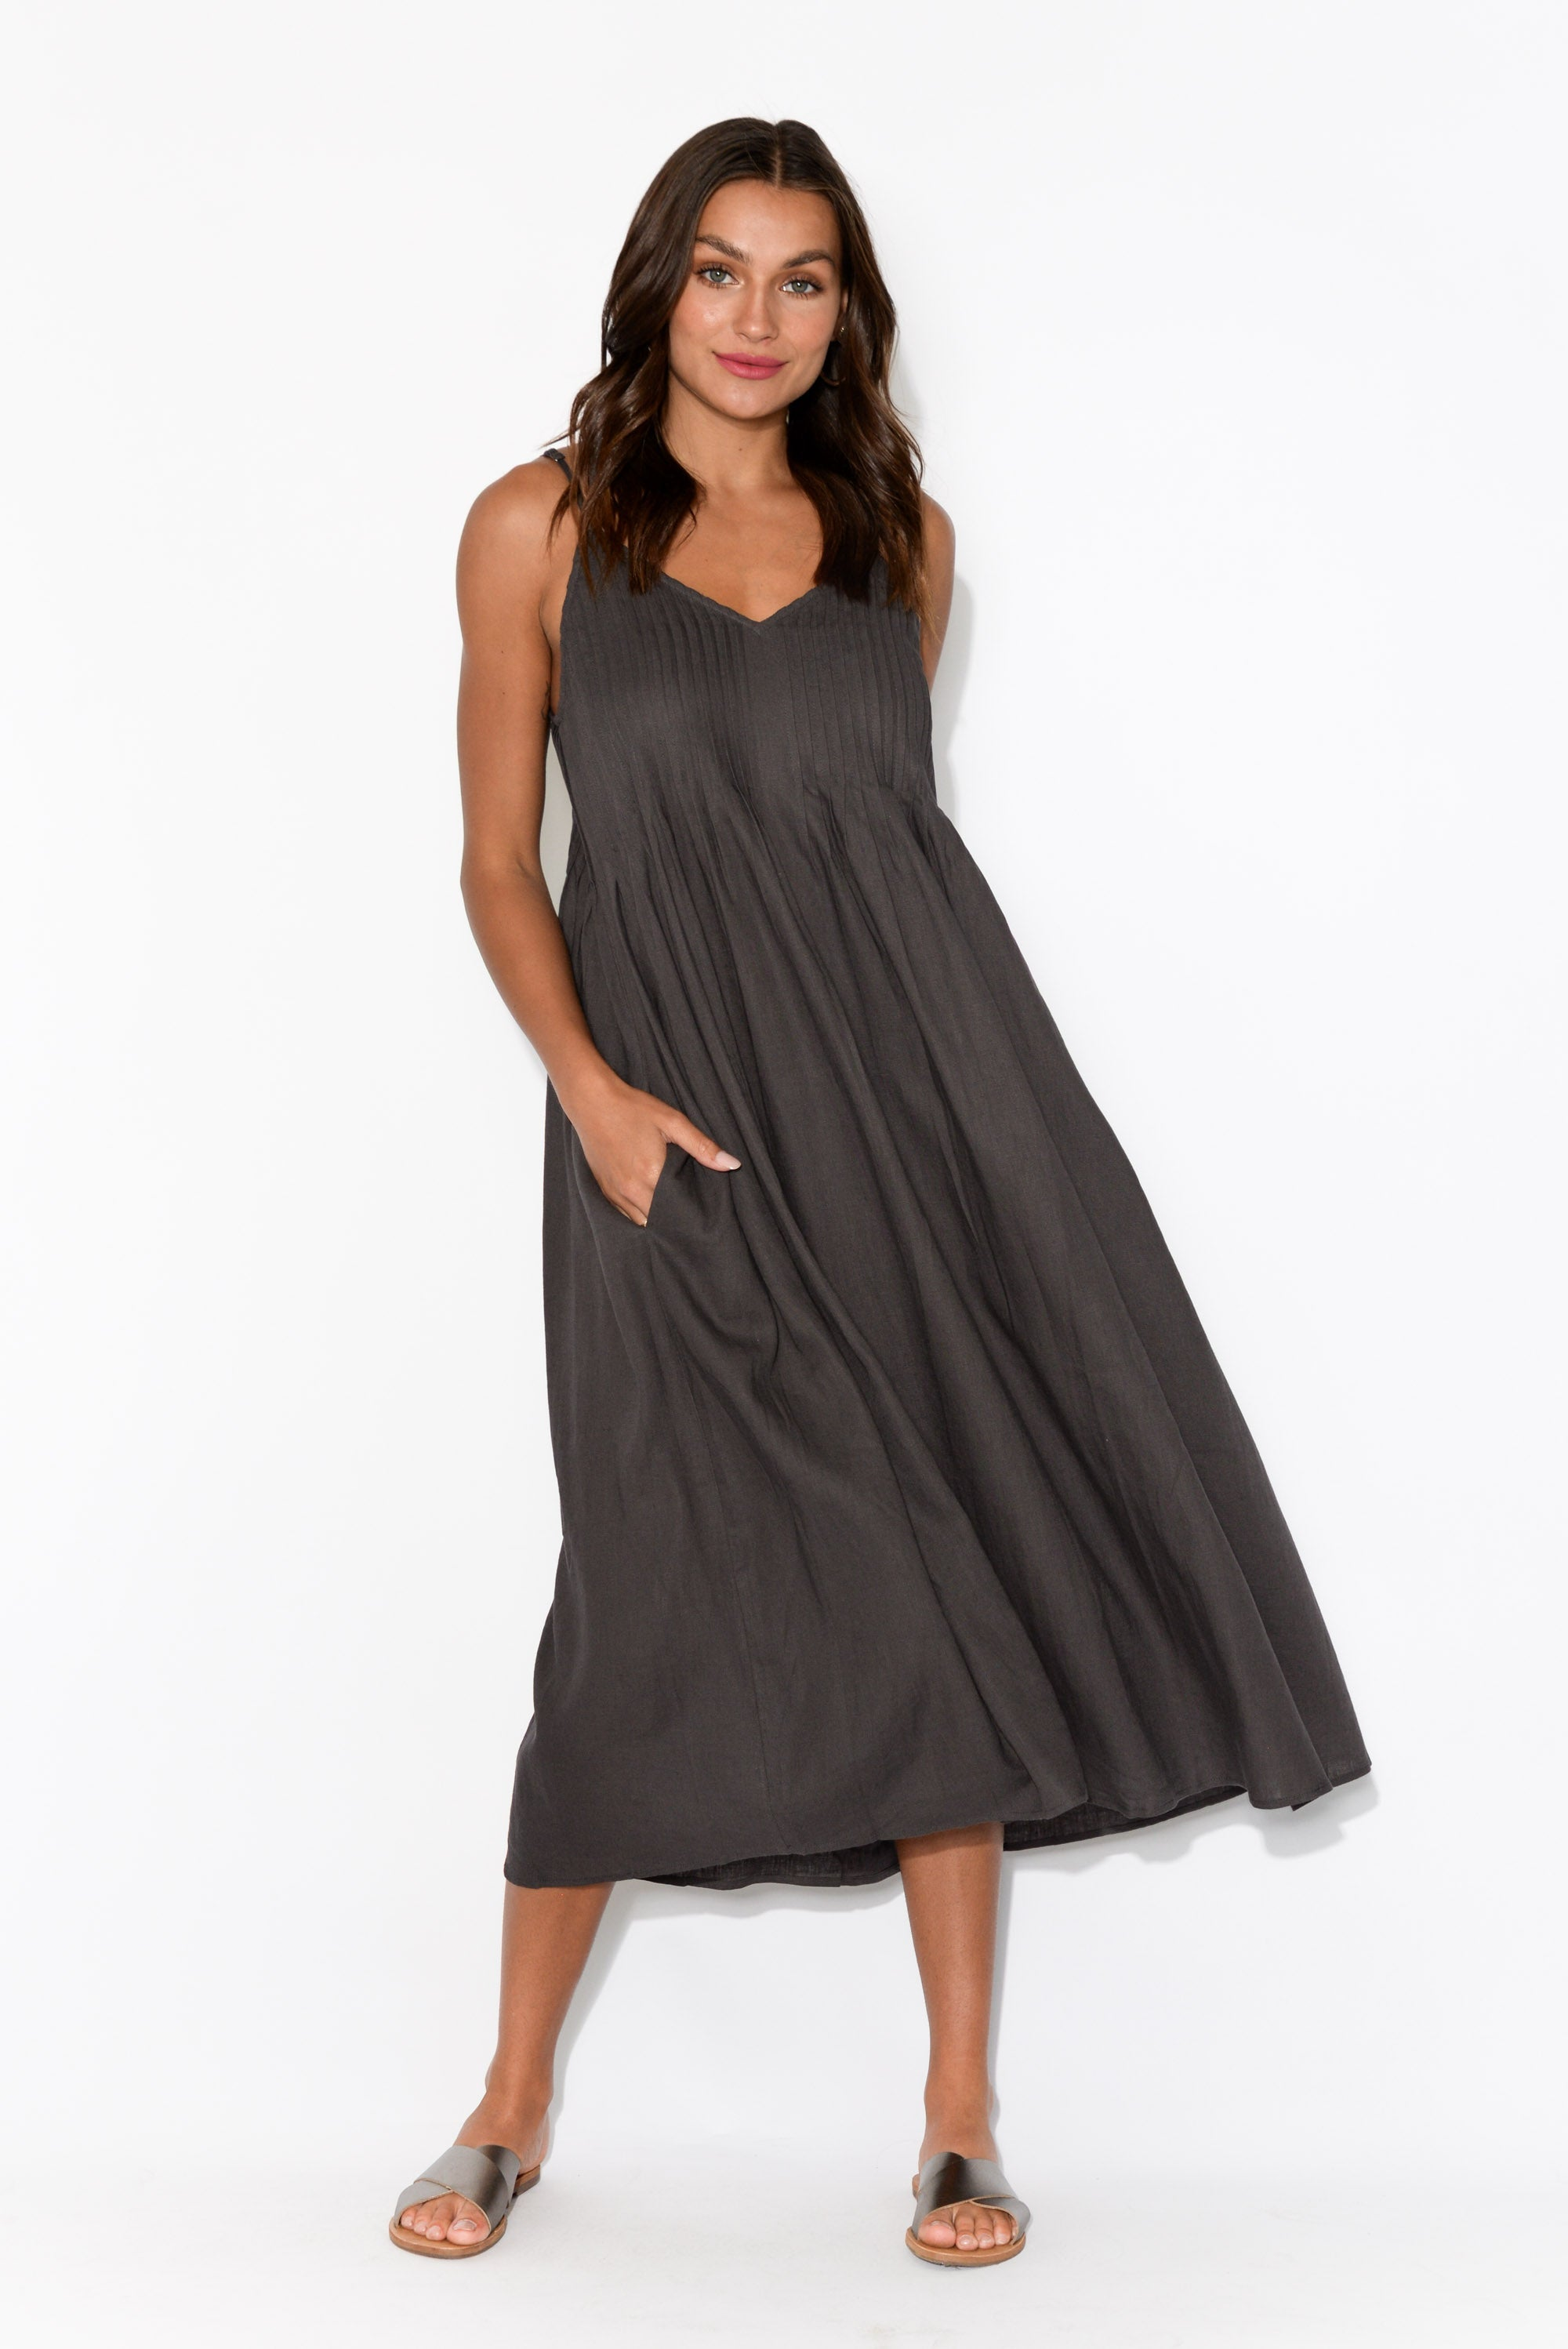 Cuban Charcoal Sleeveless Maxi Dress